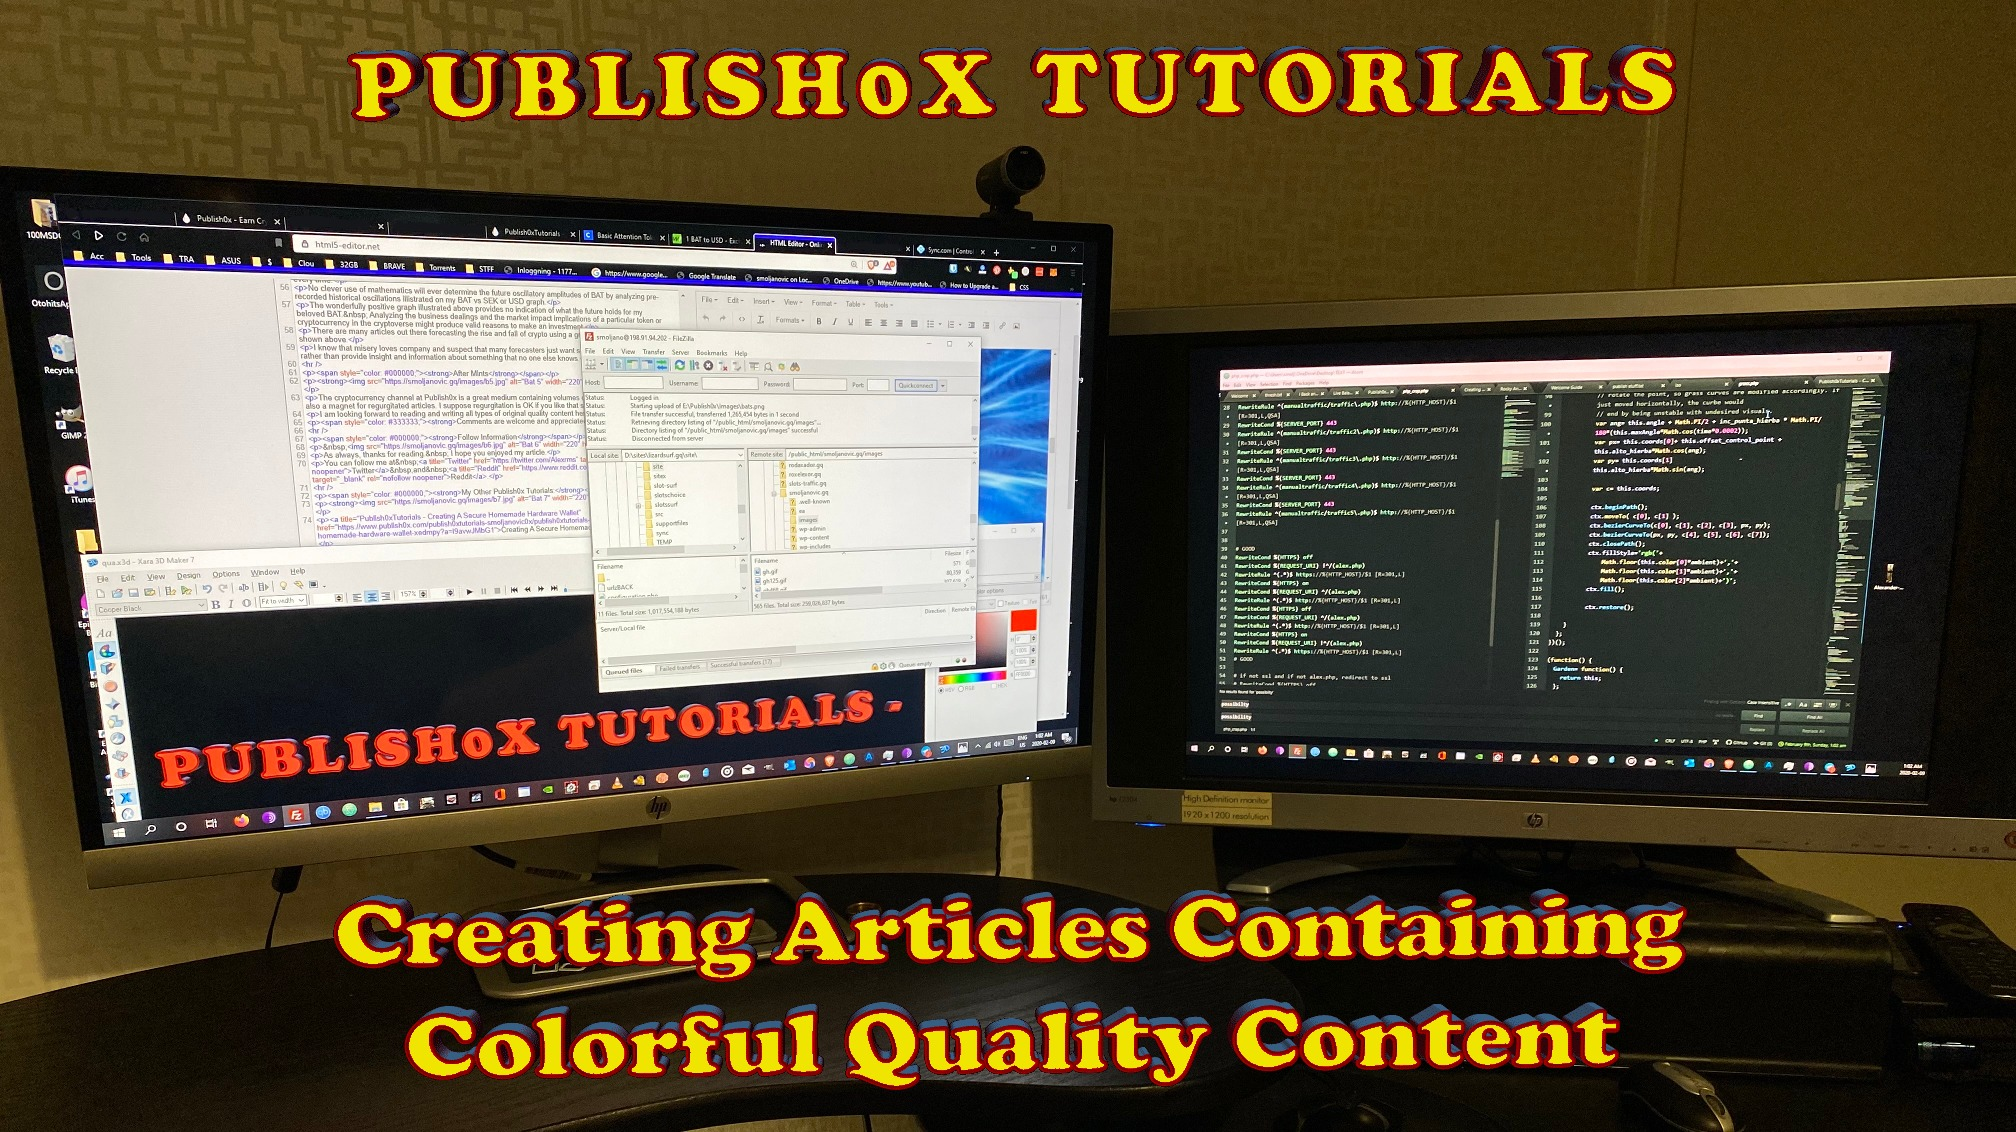 Publish0xTutorial - Creating Articles Containing Colorful Quality Content